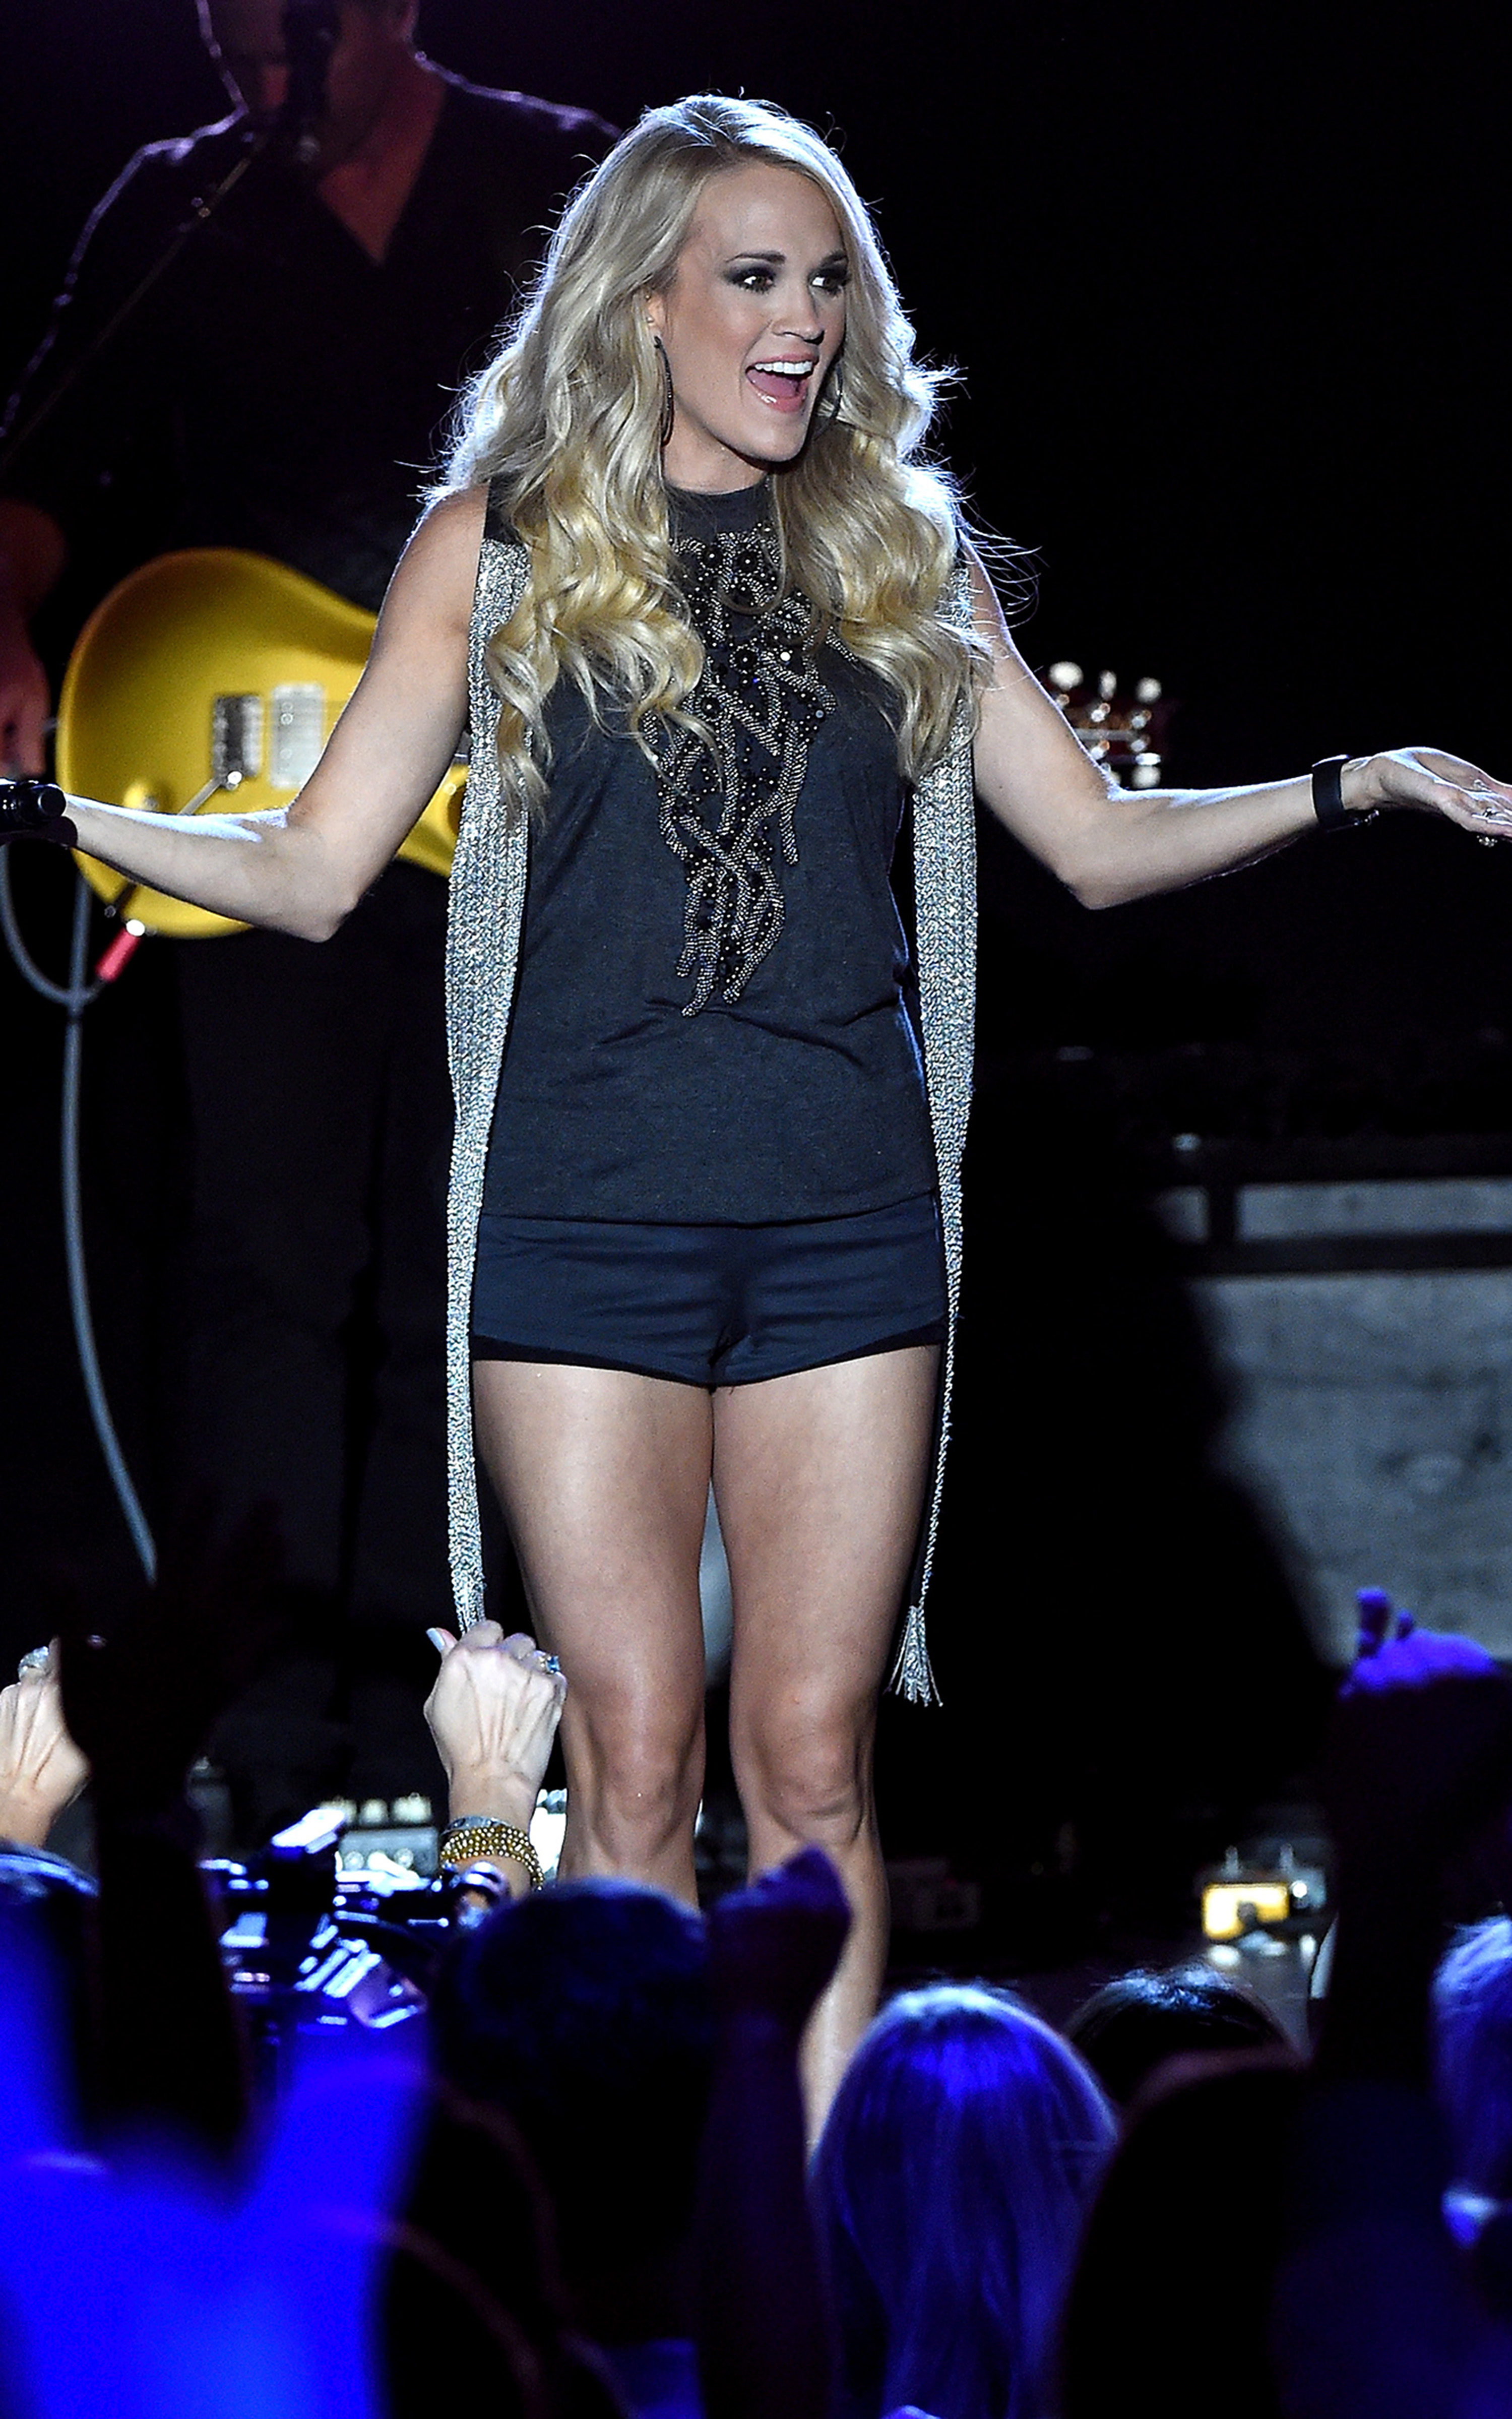 Carrie Underwood Delivers Smoking Surprise Show